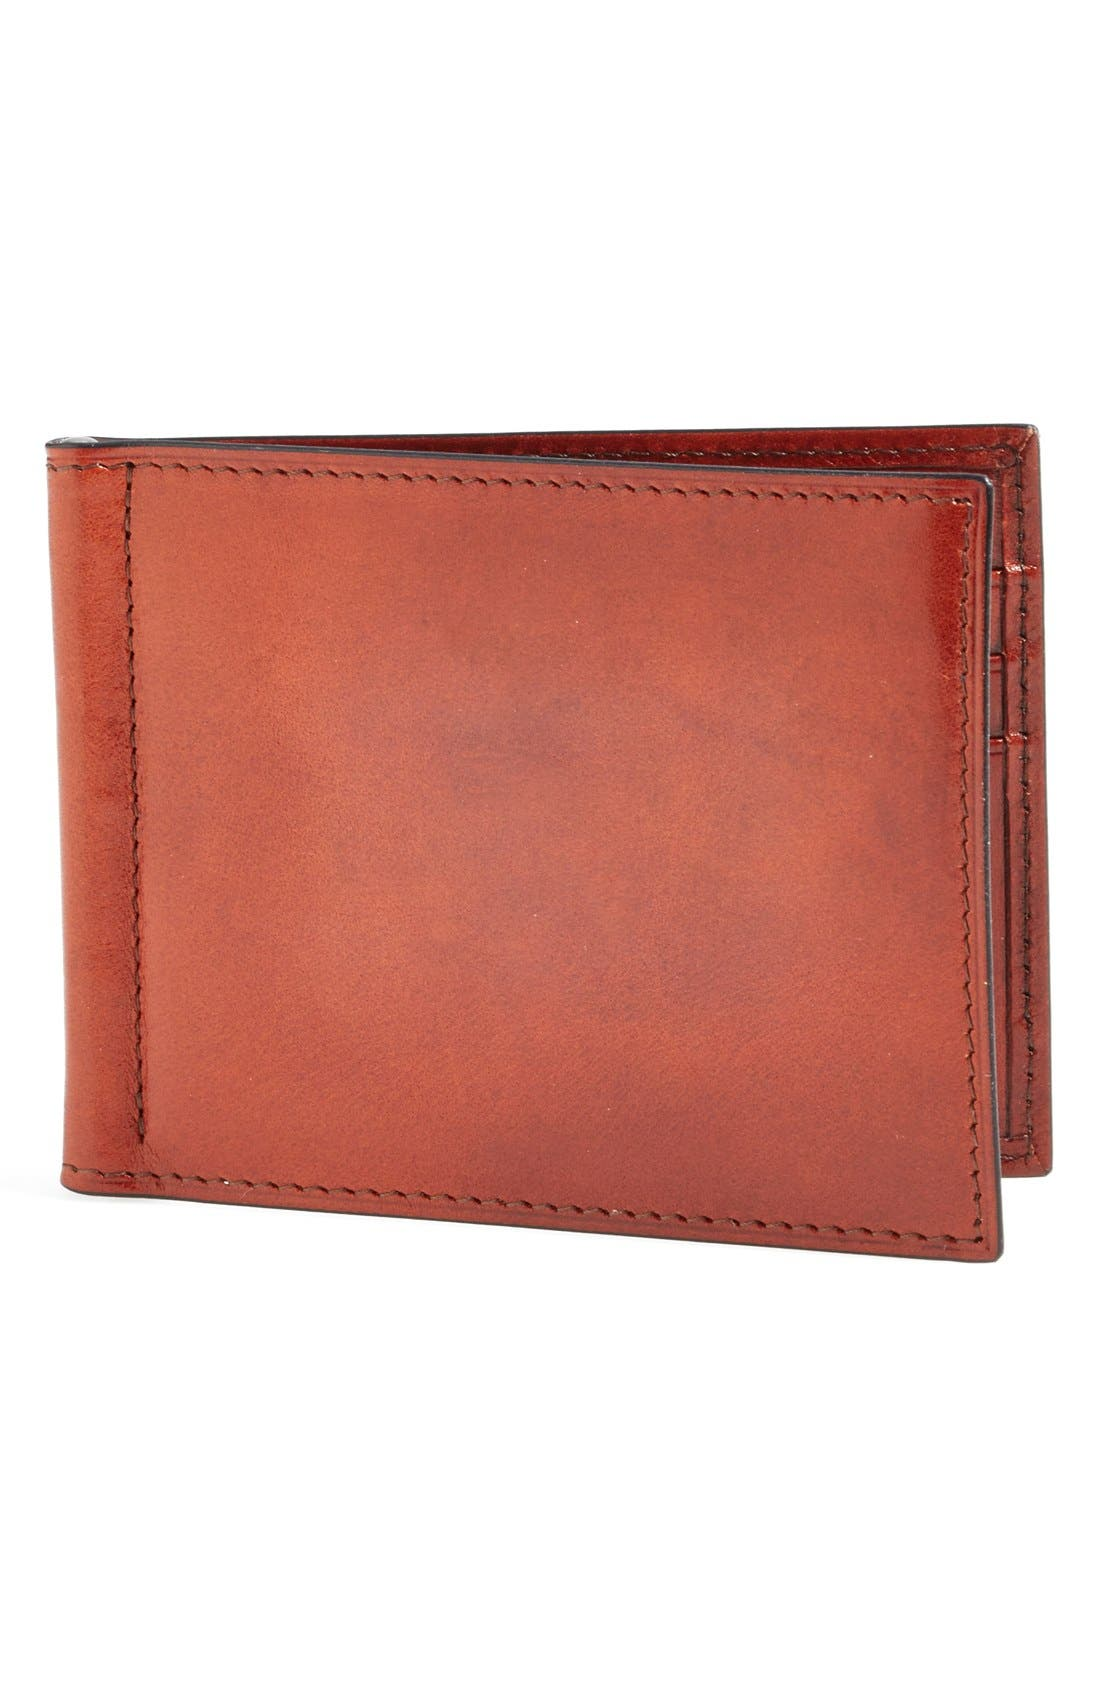 Main Image - Bosca 'Old Leather' Bifold Wallet